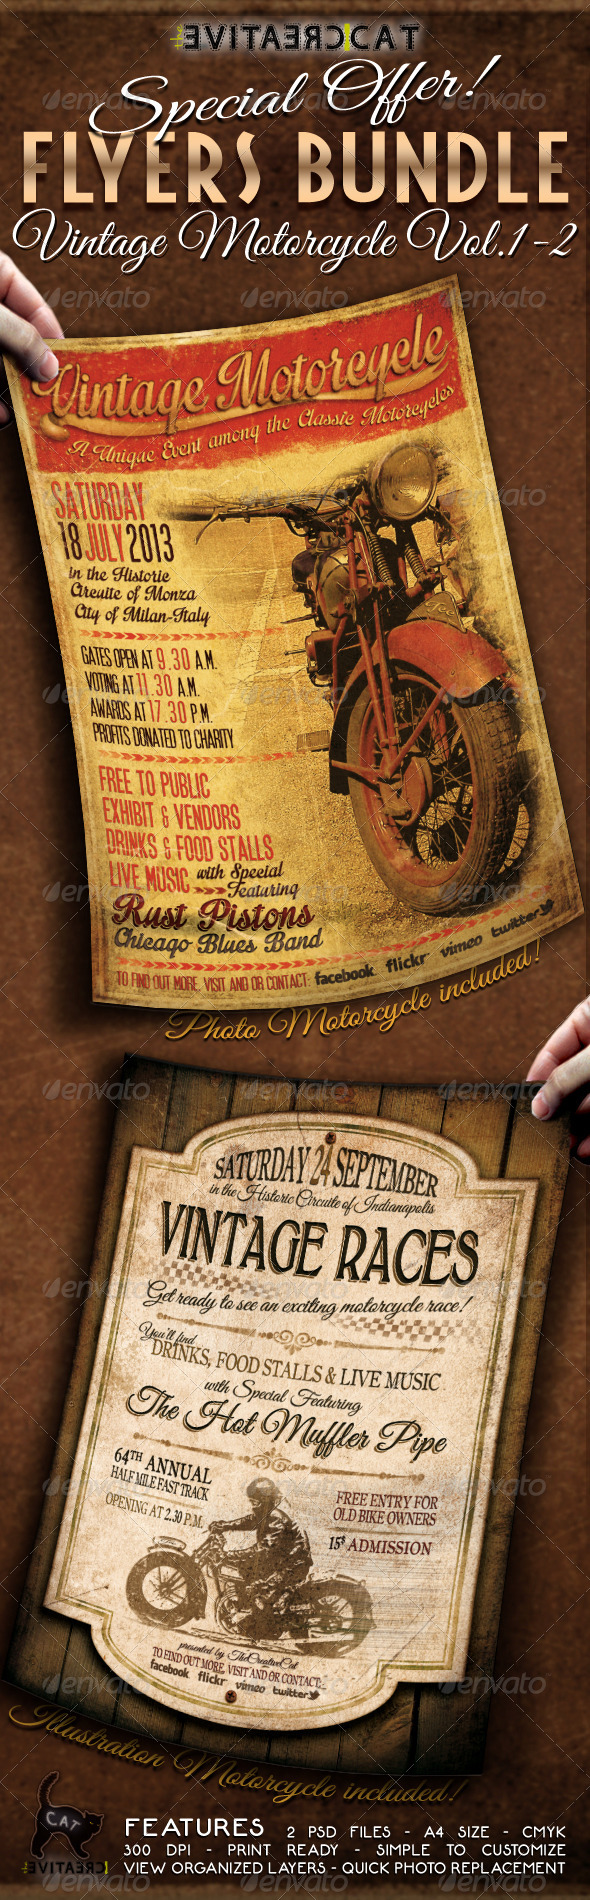 GraphicRiver Vintage Motorcycle Flyer Poster Bundle Vol 1-2 5292417